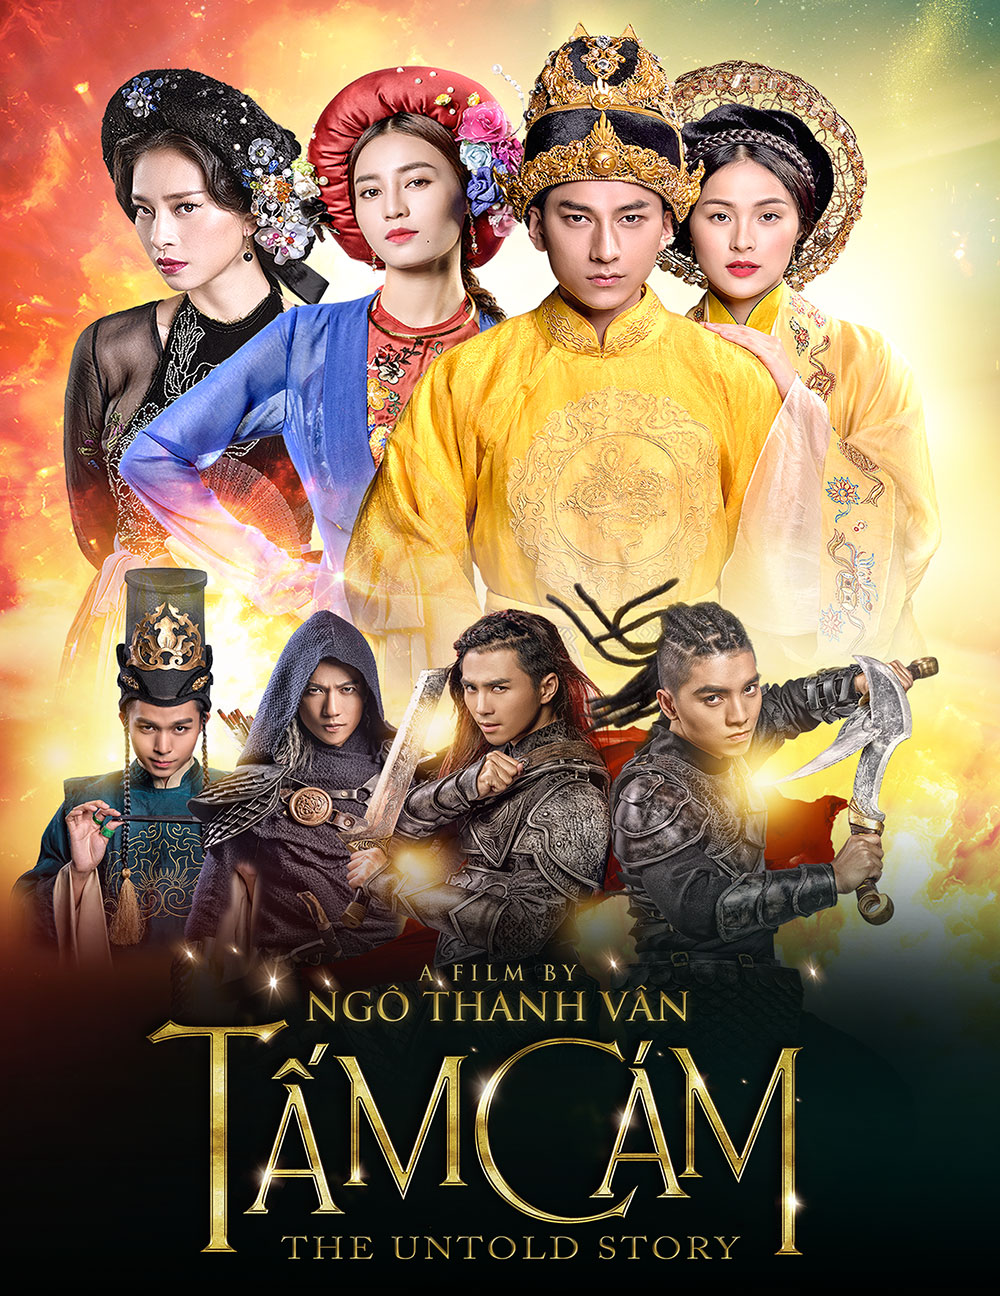 Tam Cam Movie Poster 2